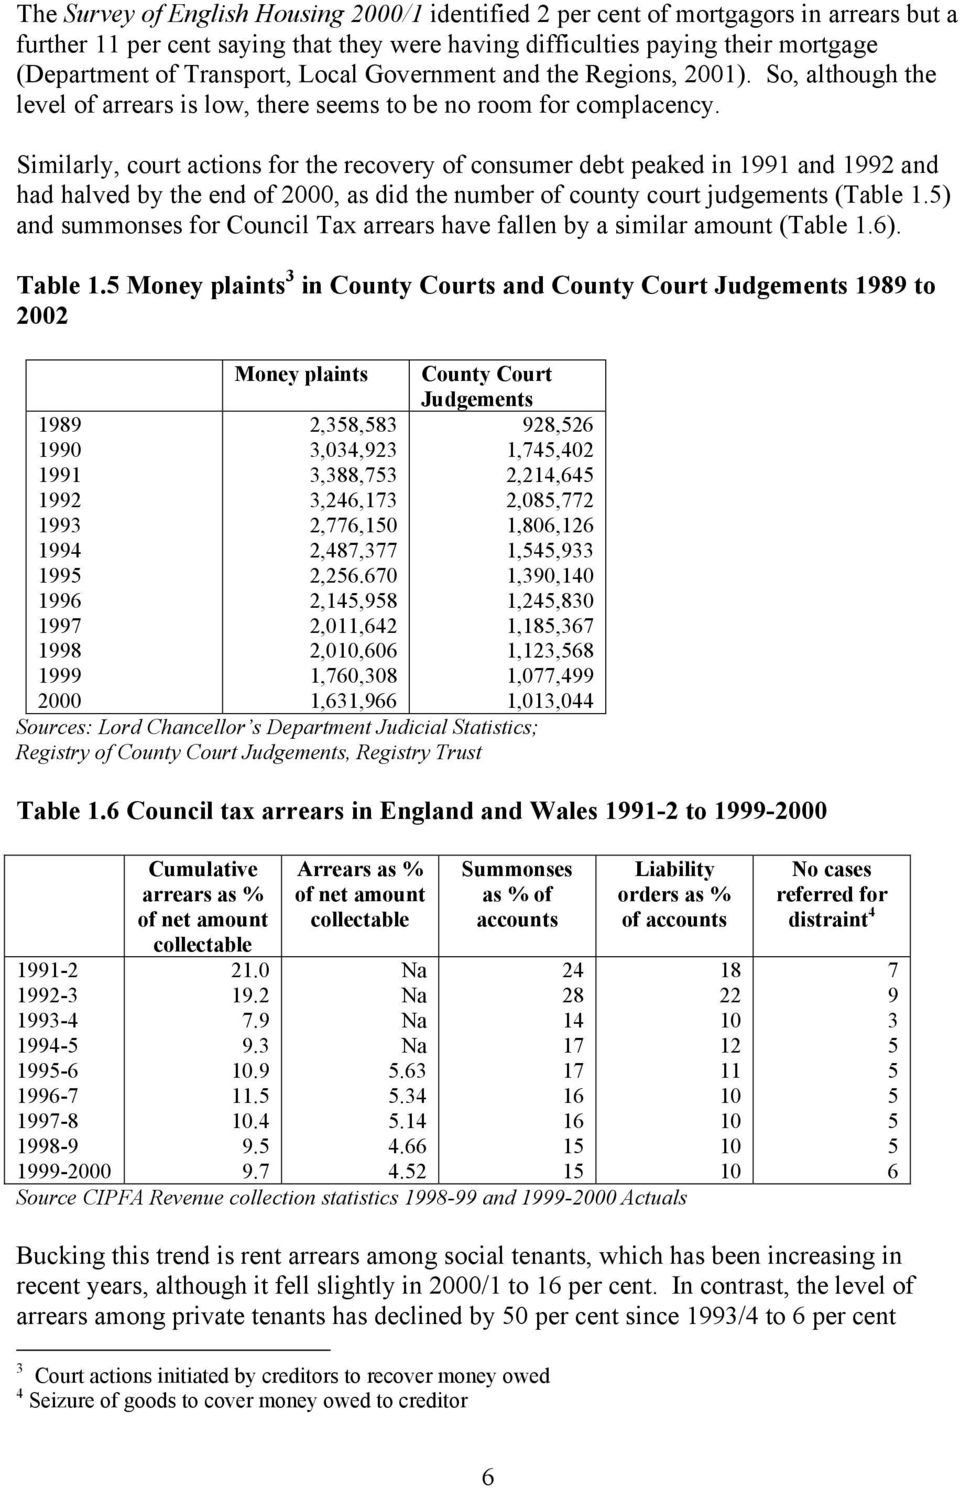 Similarly, court actions for the recovery of consumer debt peaked in 1991 and 199 and had halved by the end of 000, as did the number of county court judgements (Table 1.